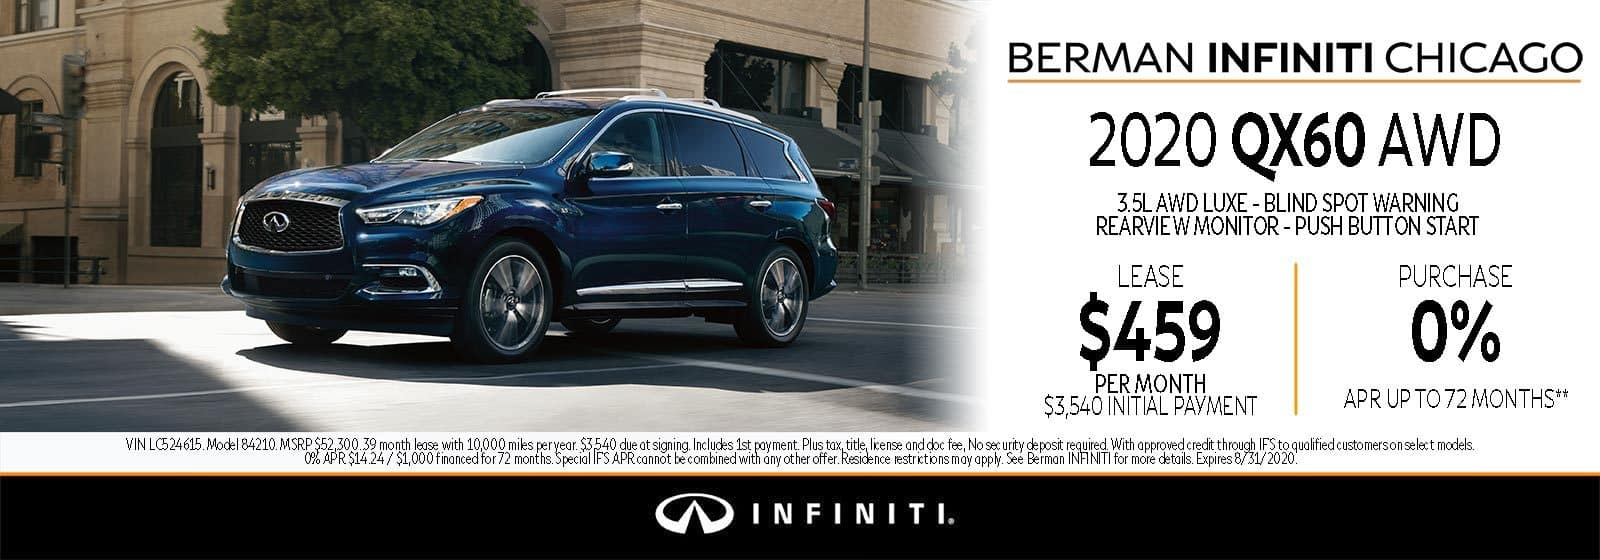 New 2020 INFINITI QX60 August offer at Berman INFINITI Chicago!